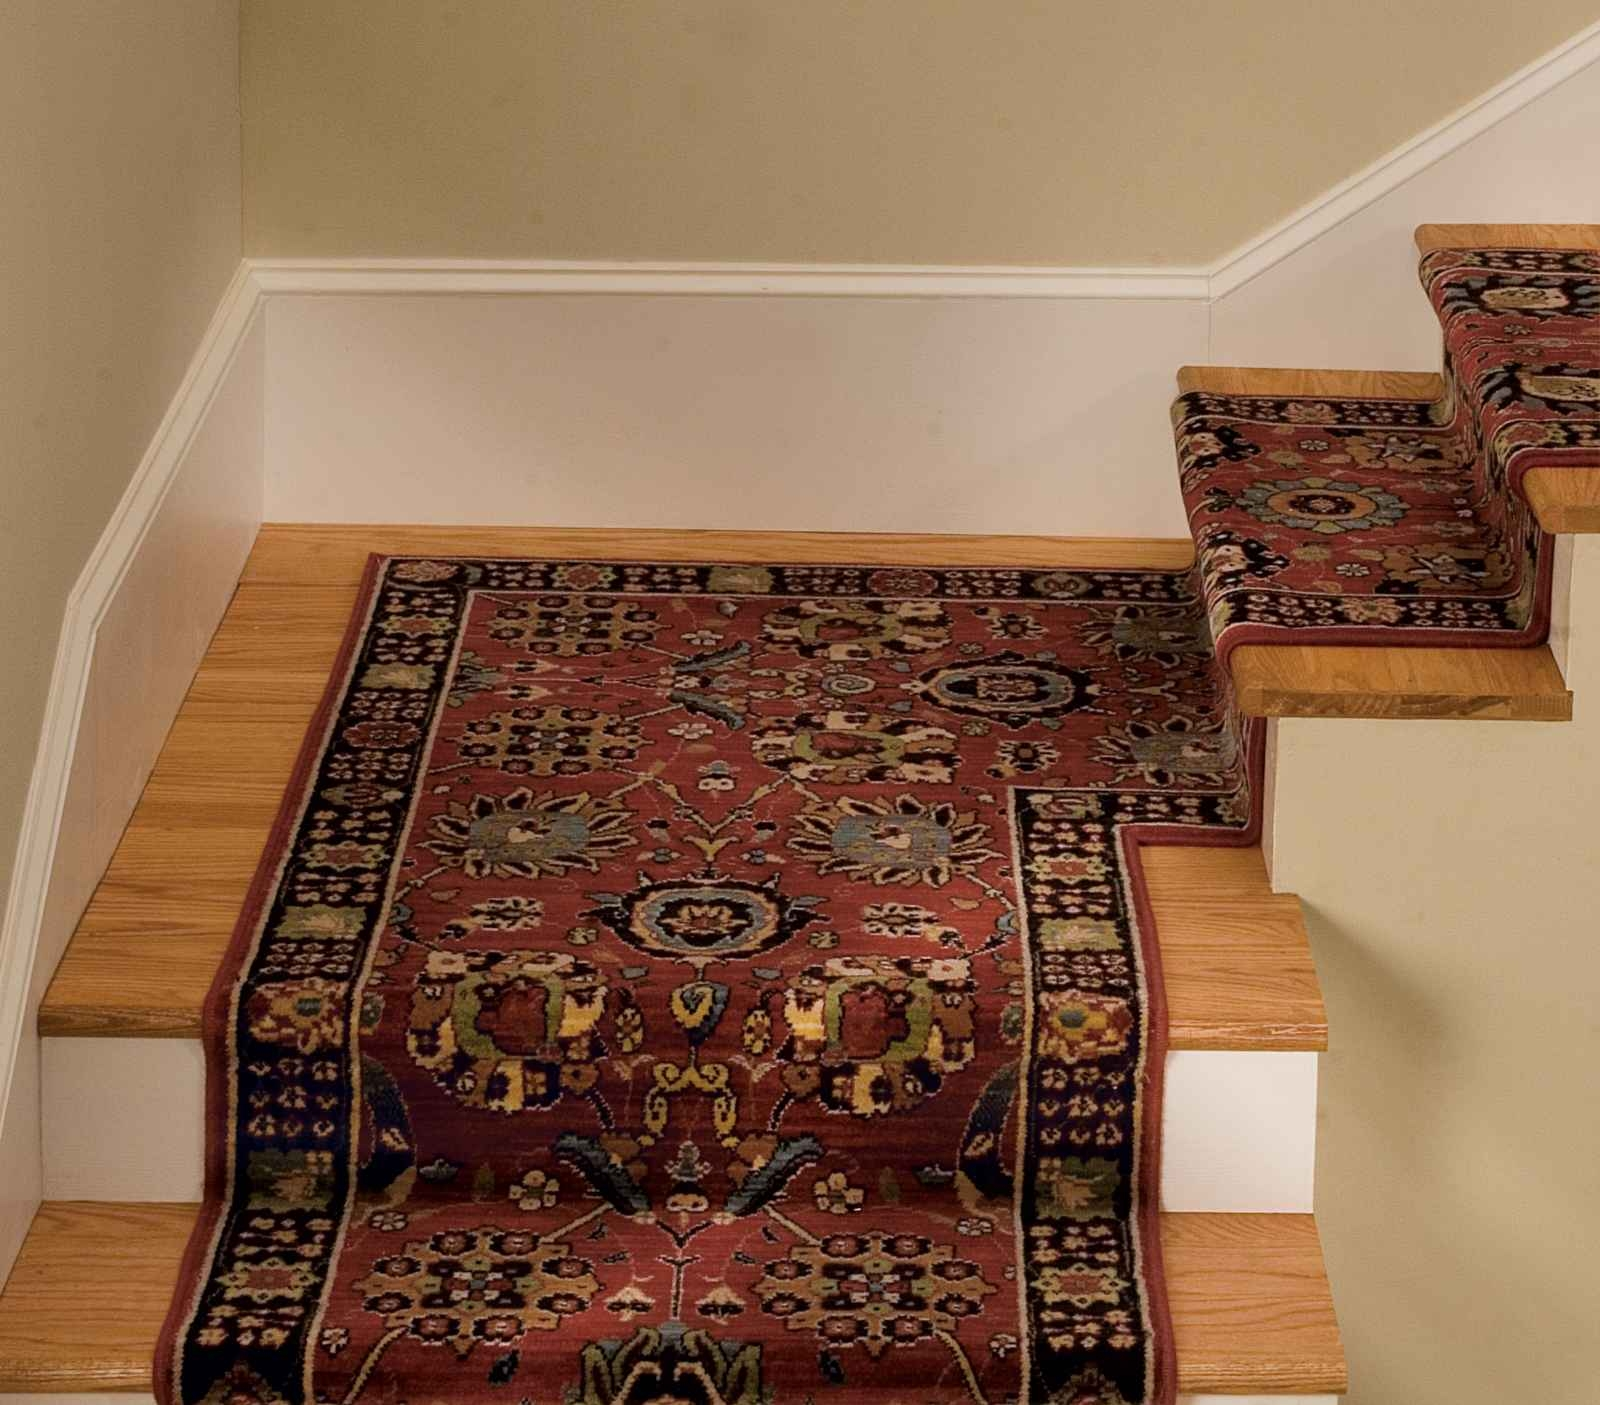 Carpet Stair Runner For Home New Home Pinterest Stair Treads Regarding Stair Tread Carpet Runners (View 2 of 15)